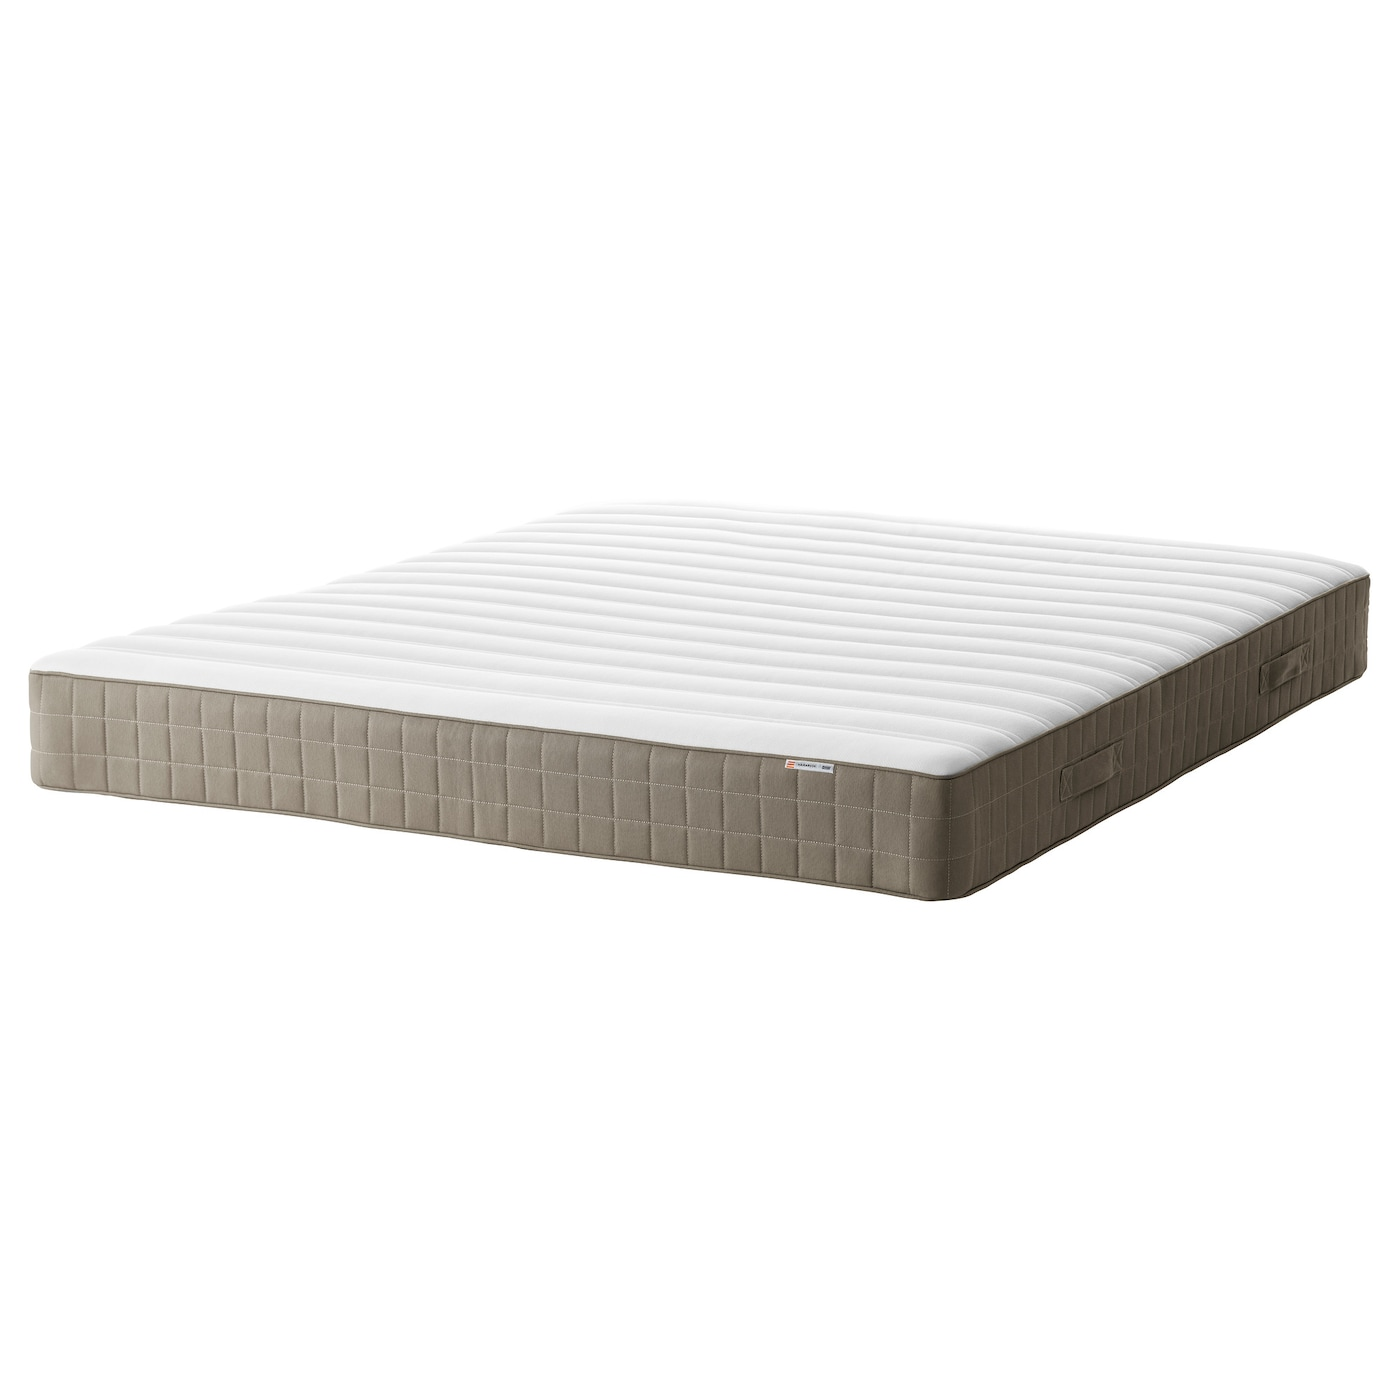 hamarvik sprung mattress firm dark beige standard double